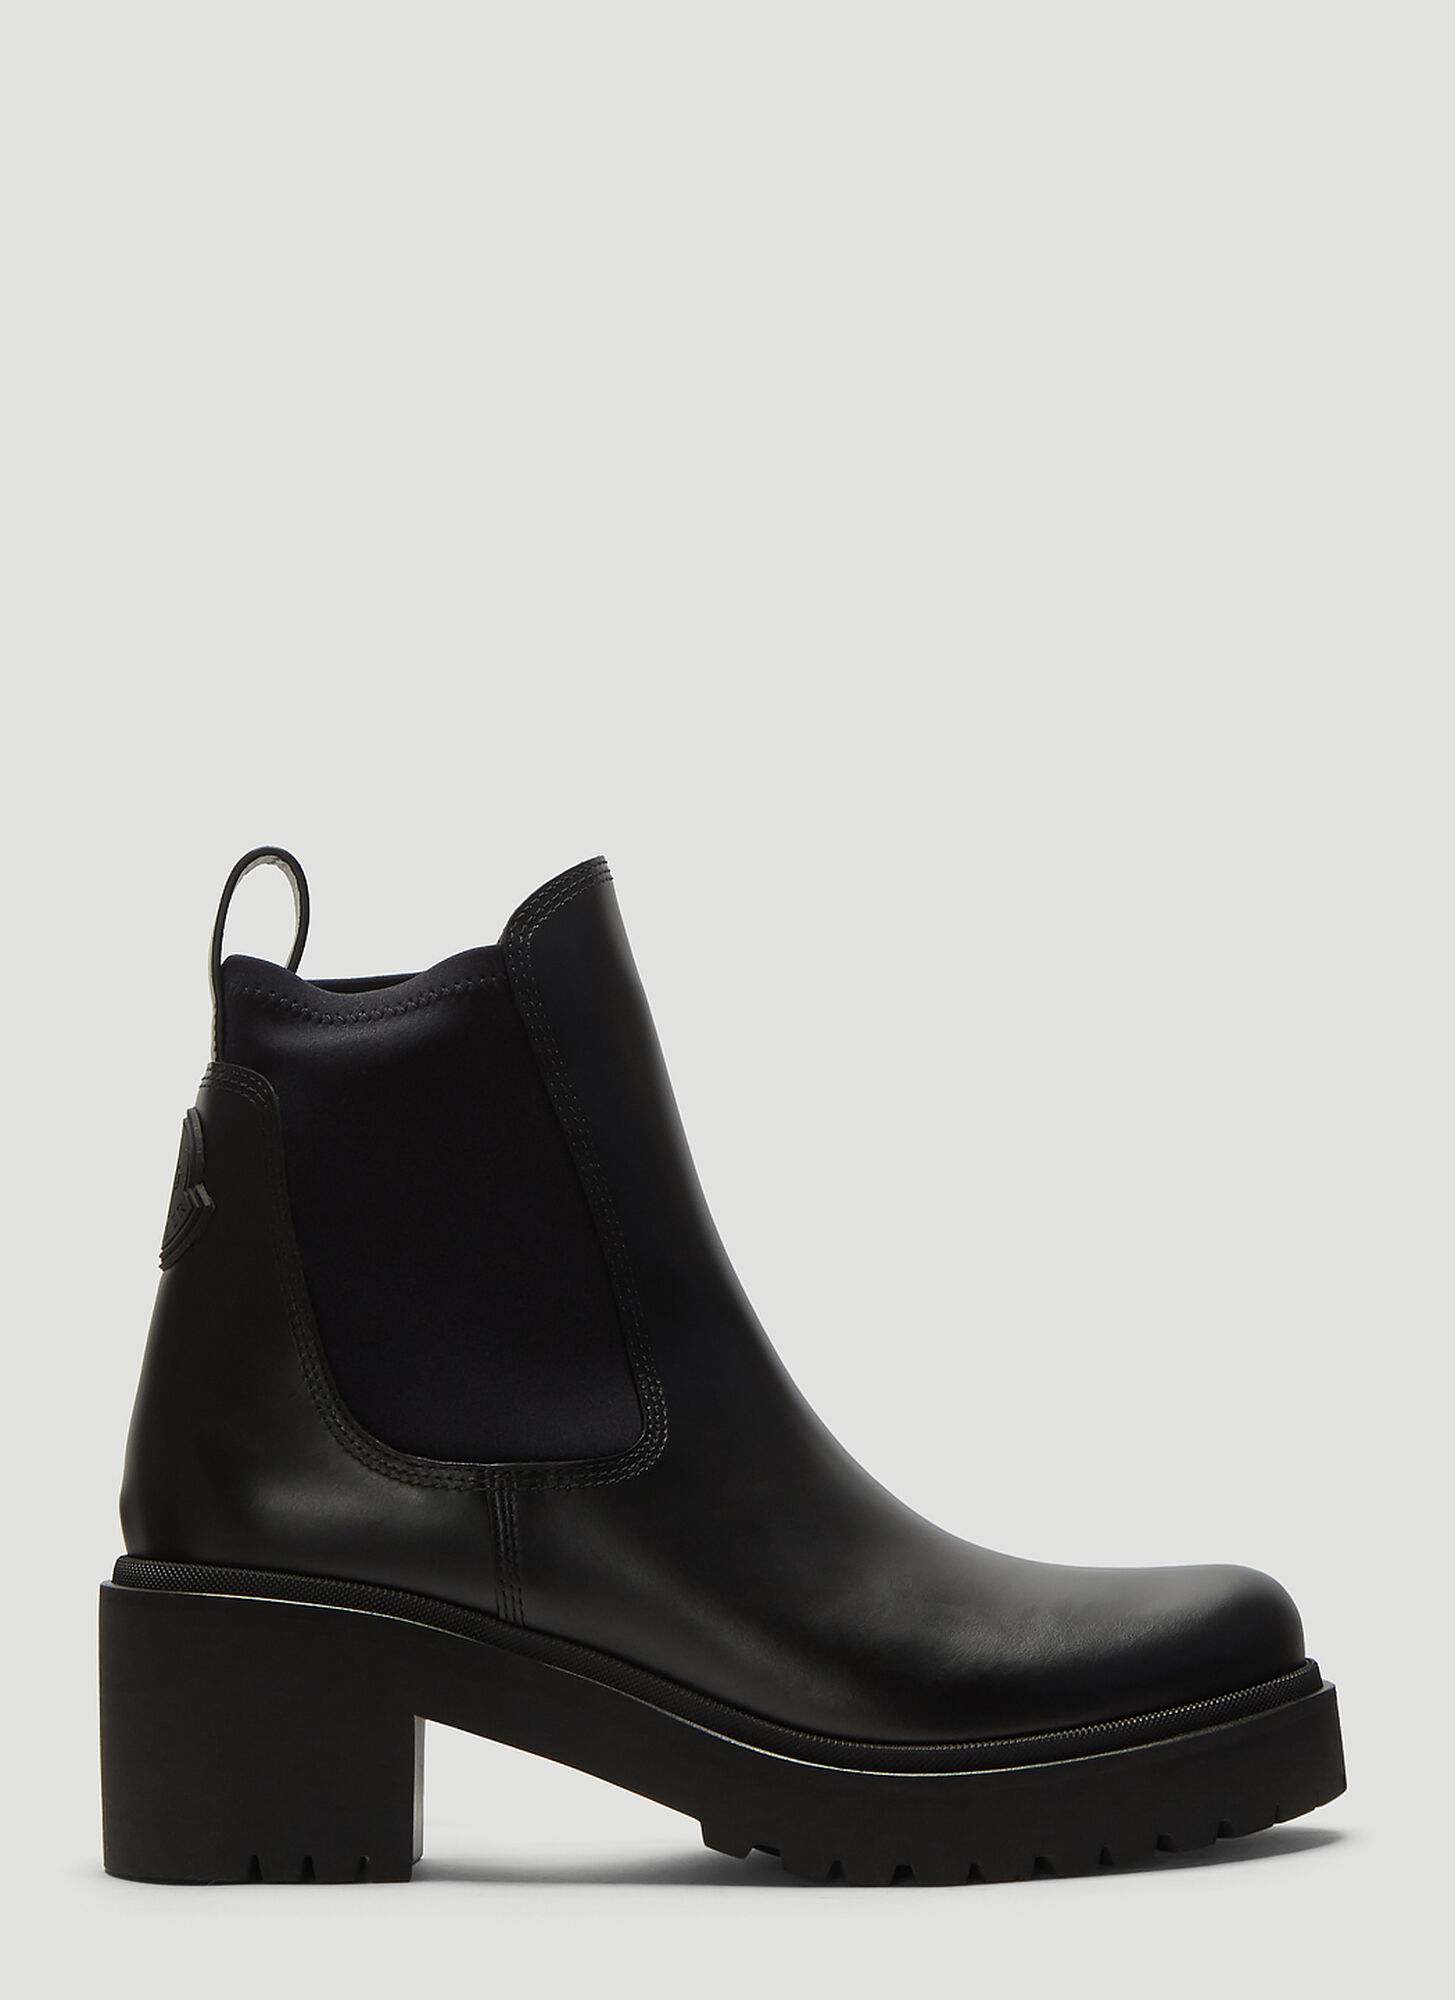 Moncler Vera Leather Boots in Black